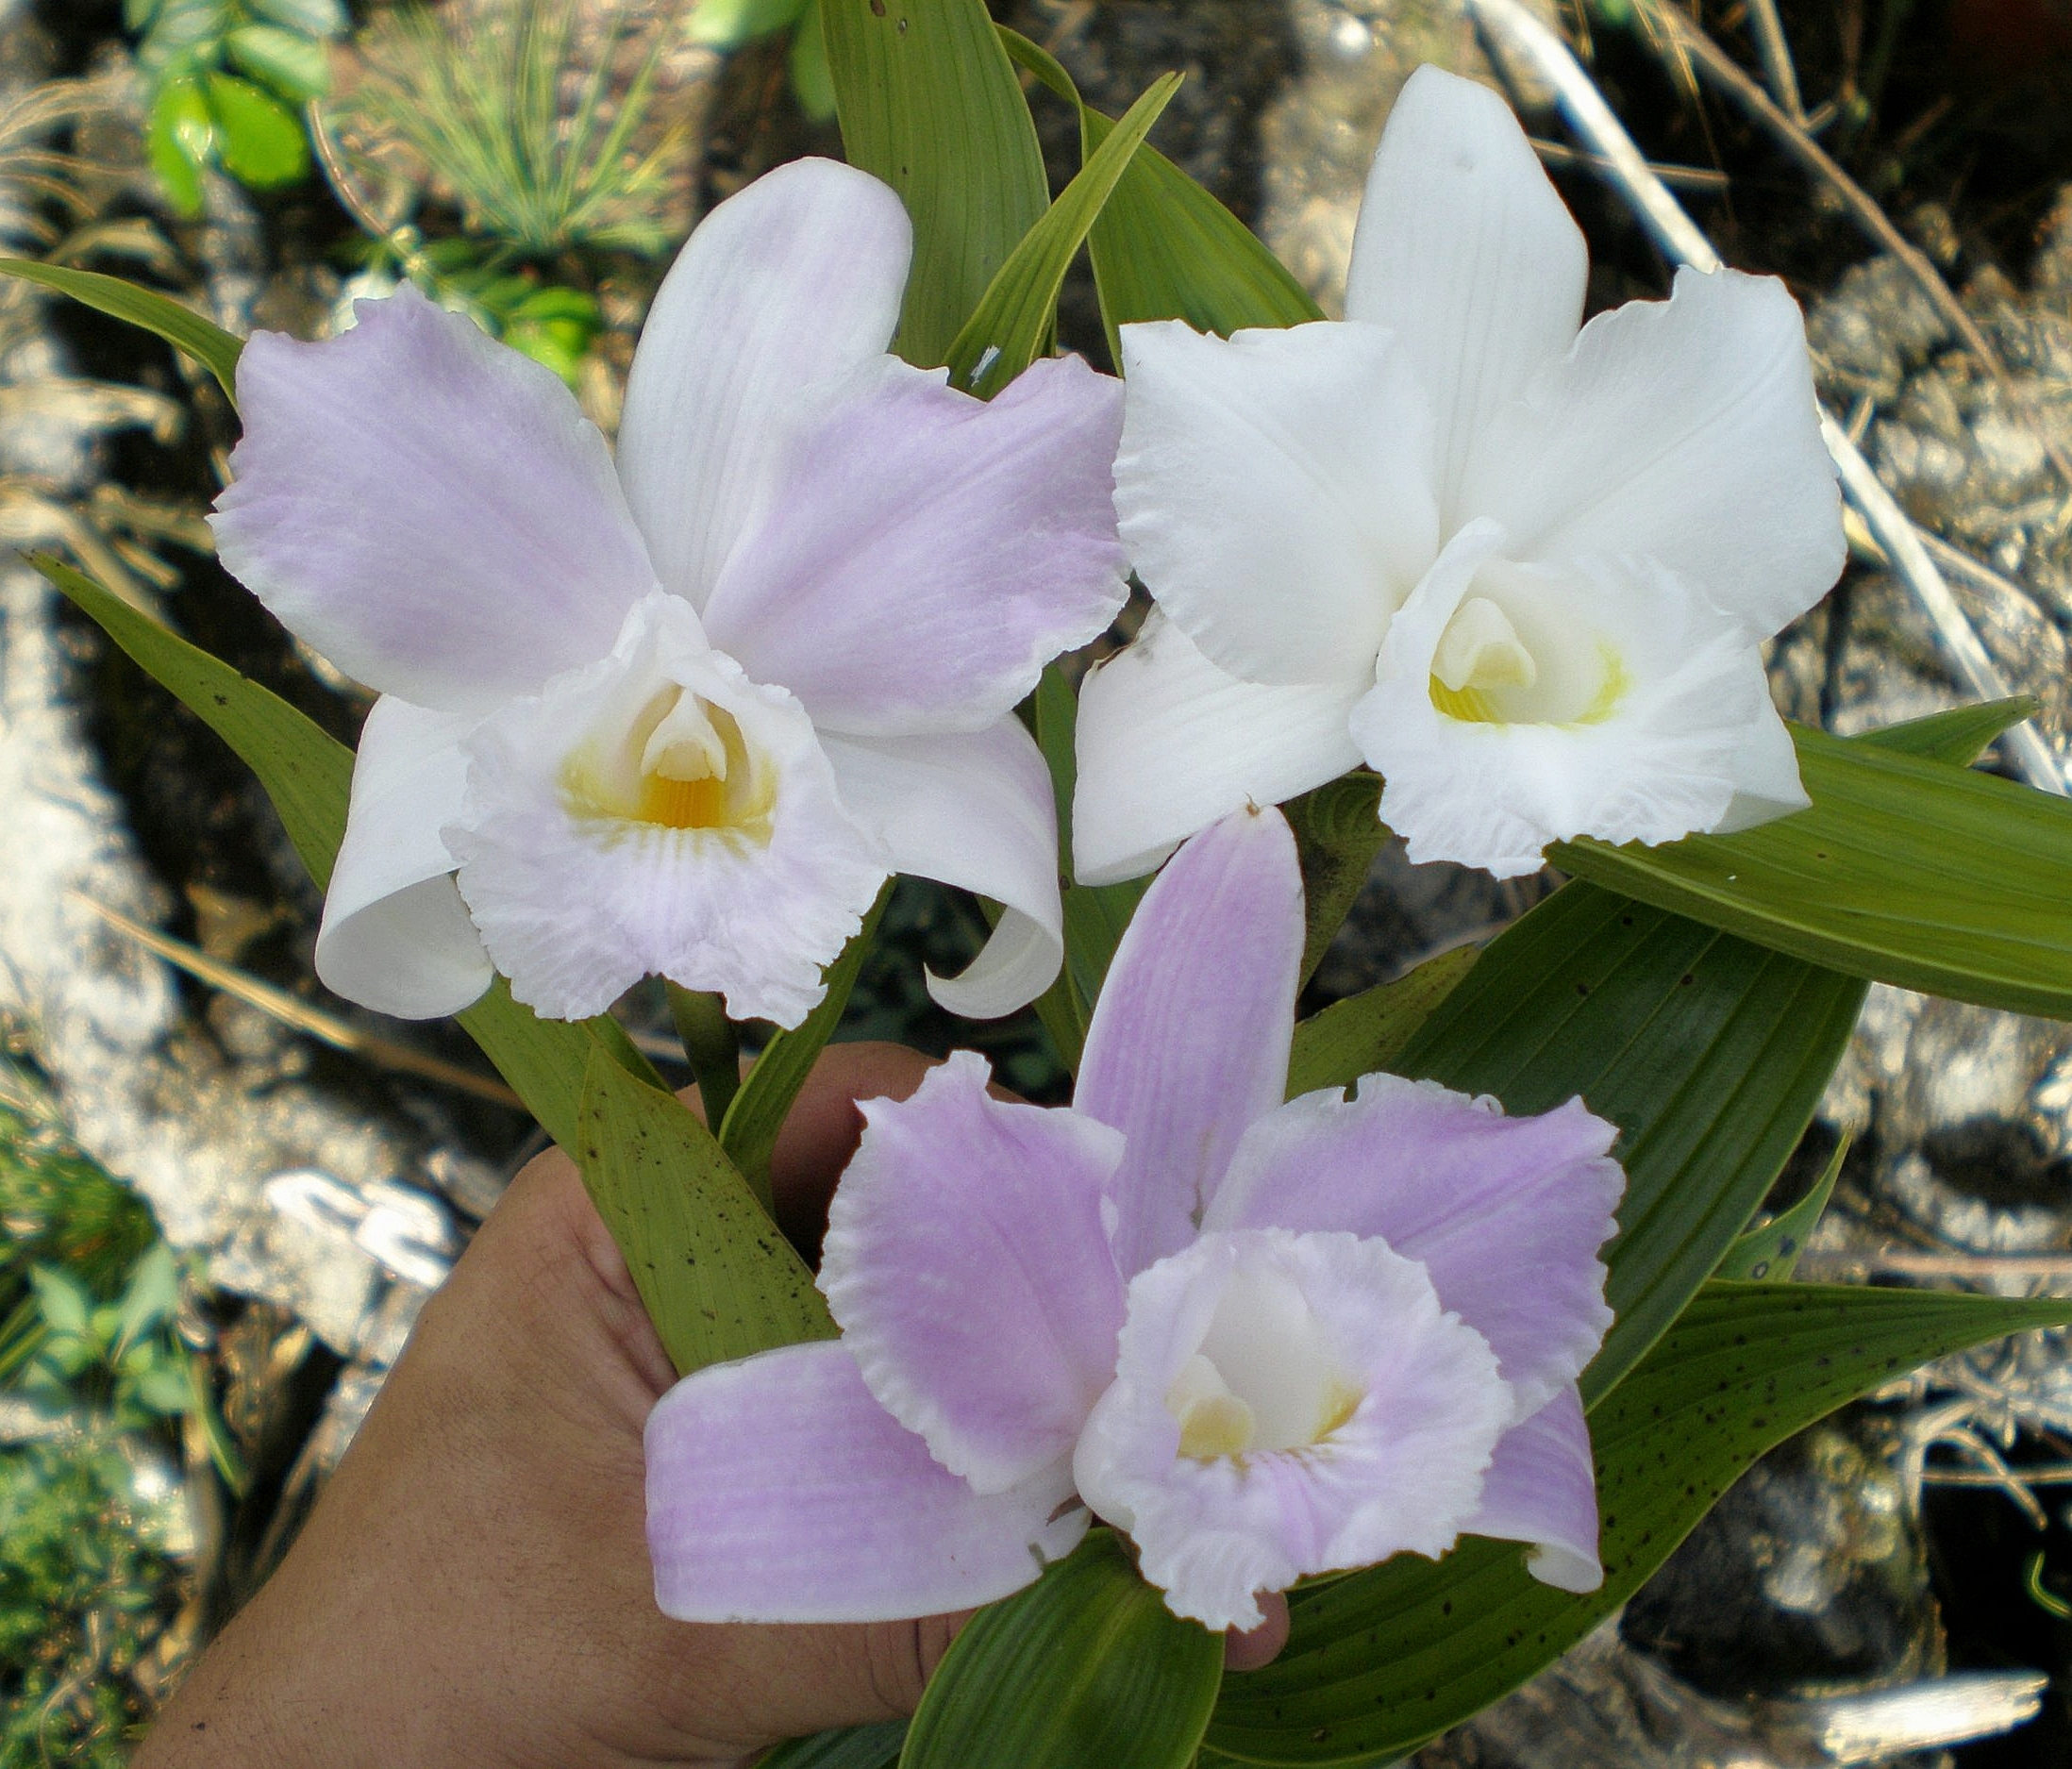 "A trio of beautiful examples of flowers from the same population of  Sobralia cobanensis , a central Guatemalan, ephemeral flowered endemic described in 1999. The lower flowering plant was identified by a visiting orchid taxonomist some years back as  S. warzcewiczii , while a local botanist considers all these plants to be examples of the different forms of  S. ""rosei"" , described in 2013. I share the view with some others in Guatemala familiar with the plant that  S. cobanensis  is a narrowly-distributed species with very variable flower color, sometimes splash-petaled (see elsewhere on this site), occasionally pure white. Its variability demonstrates the risks of describing new  Sobralia  species from single specimens or by flower color alone. Image: Edgar Mó"